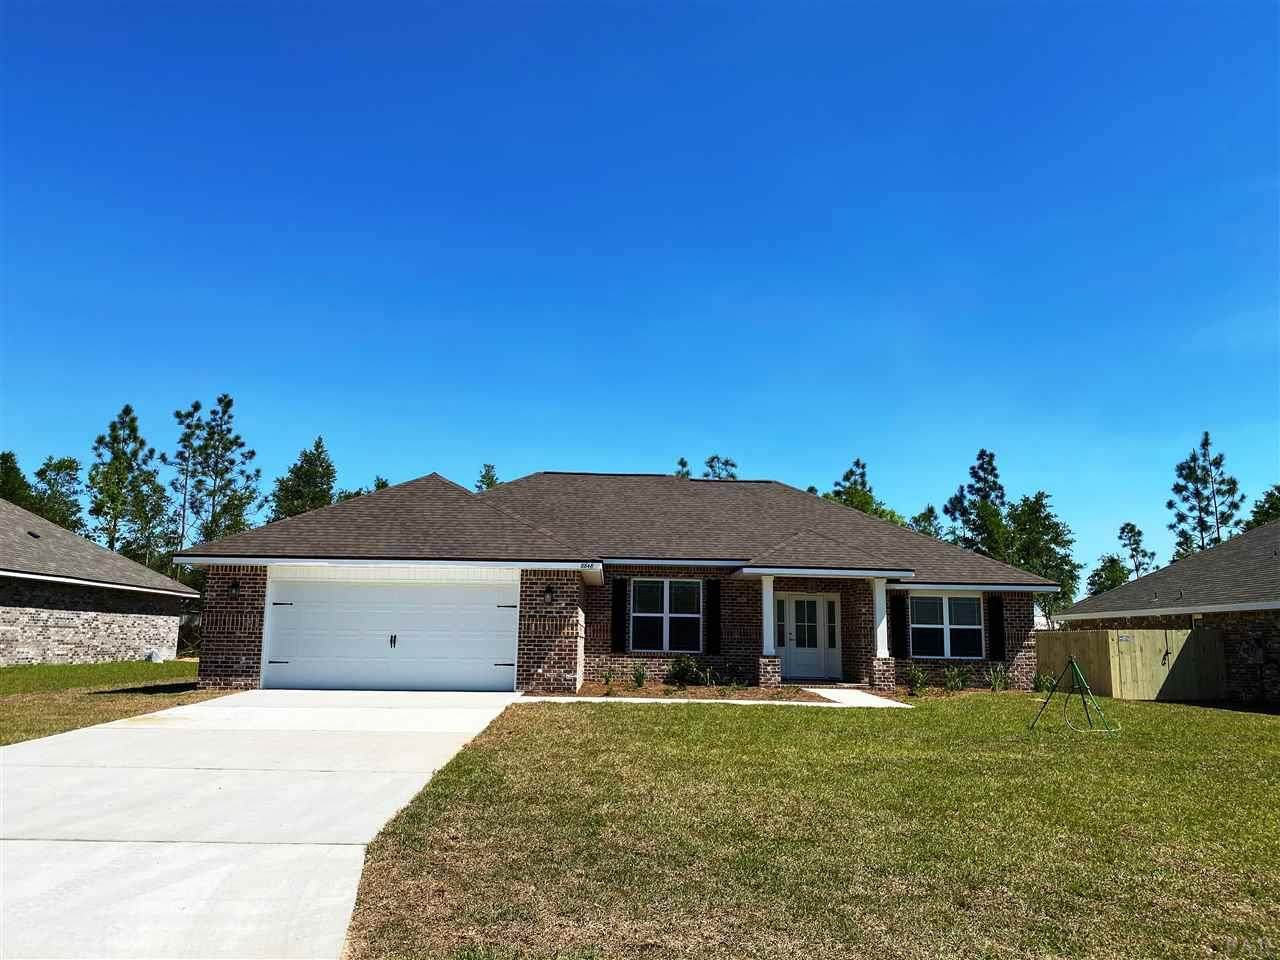 5274 Gaineswood Dr - Photo 1